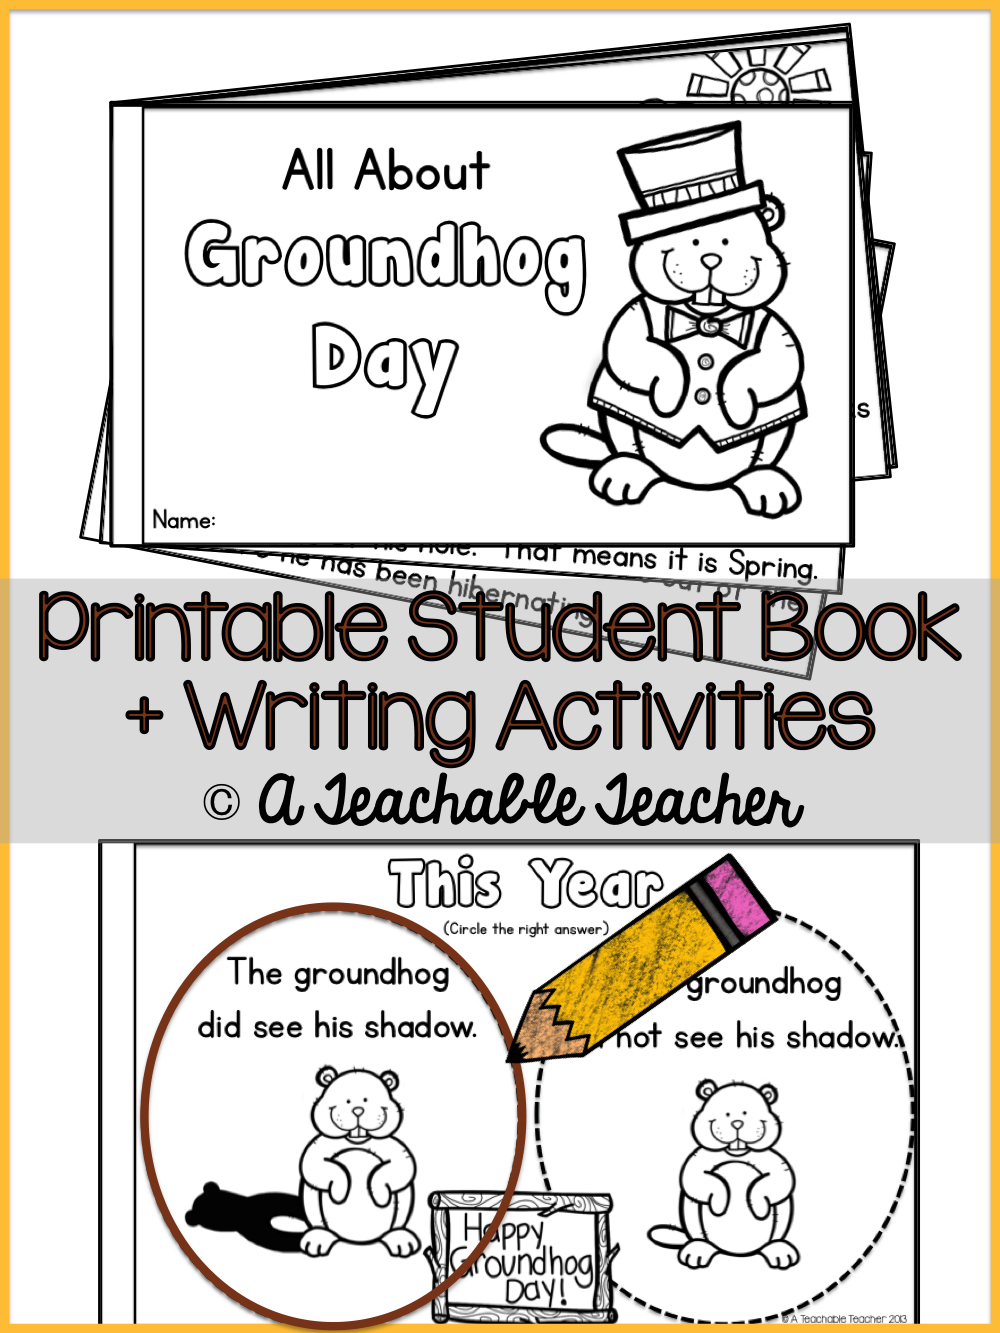 Groundhog Day   Groundhog Day Activities   Best Of Winter: New Year - Free Printable Groundhog Day Booklet